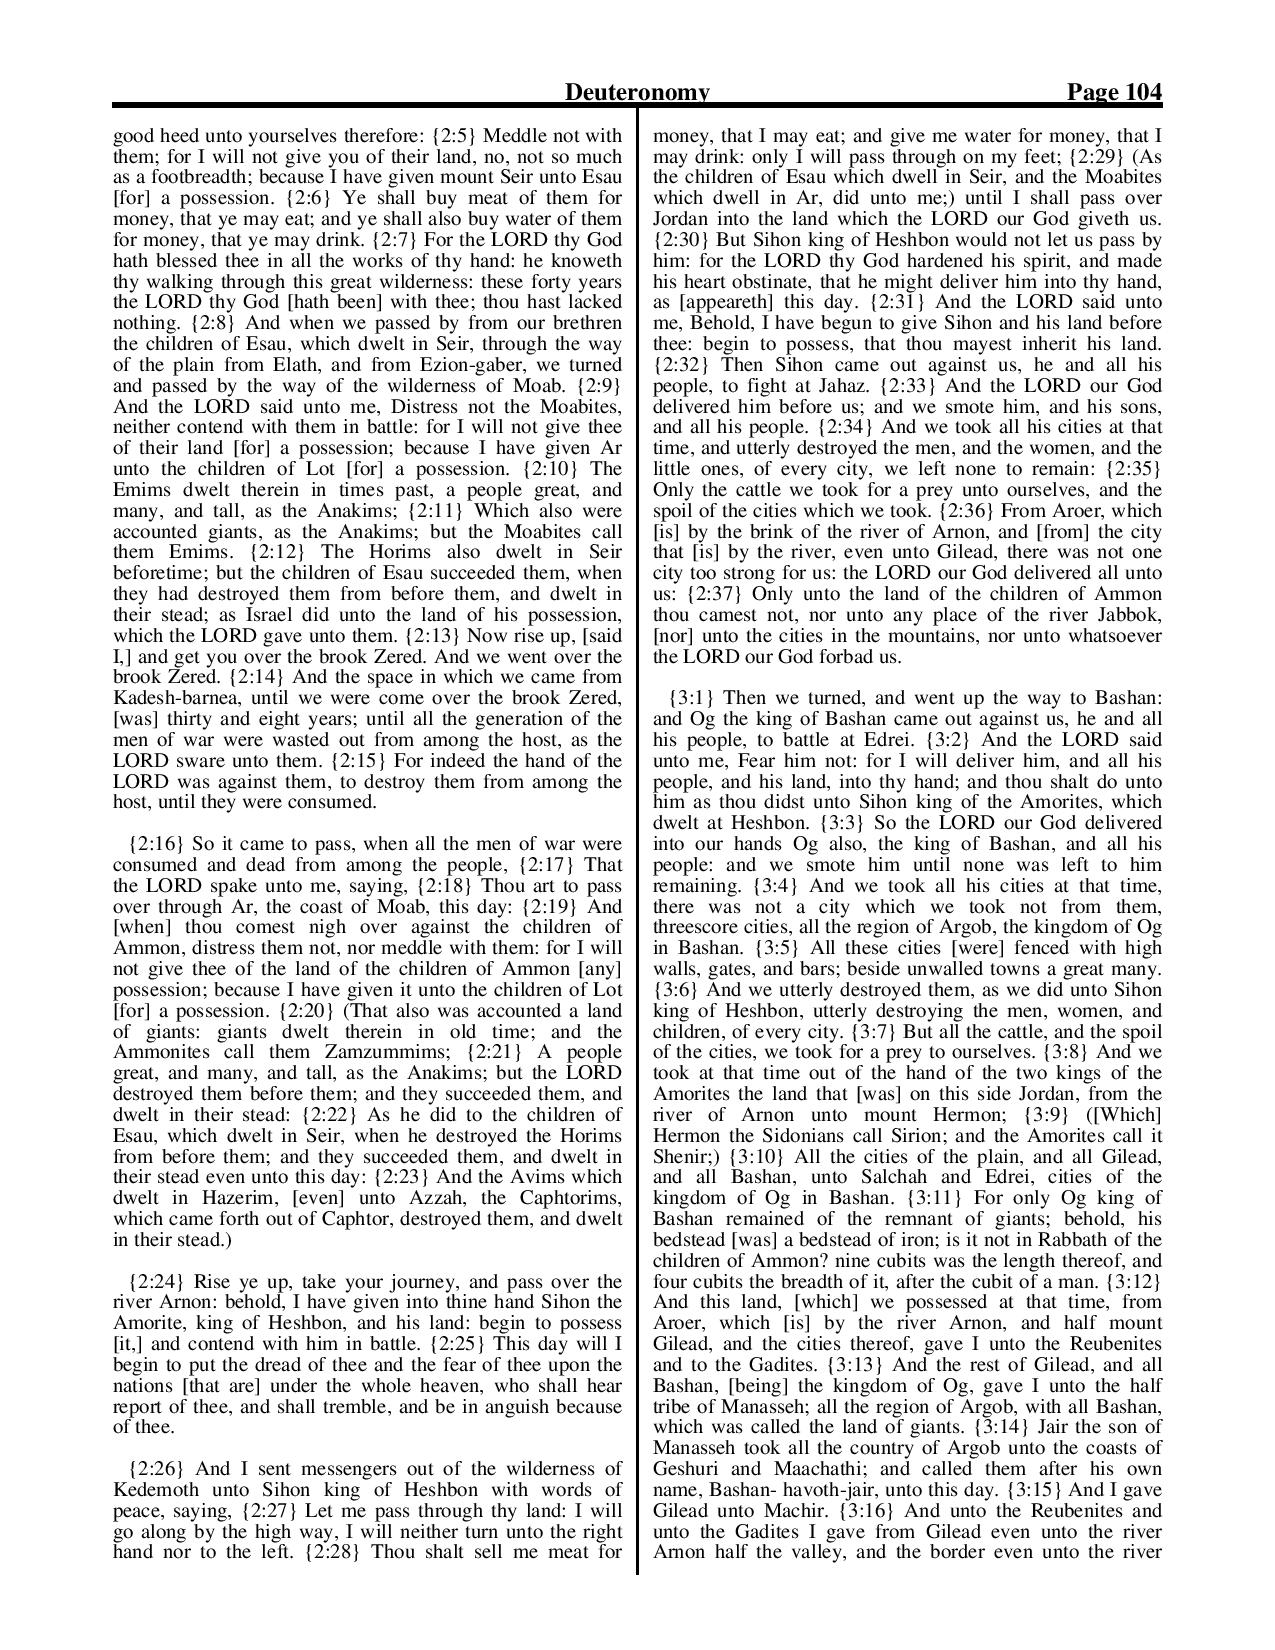 King-James-Bible-KJV-Bible-PDF-page-125